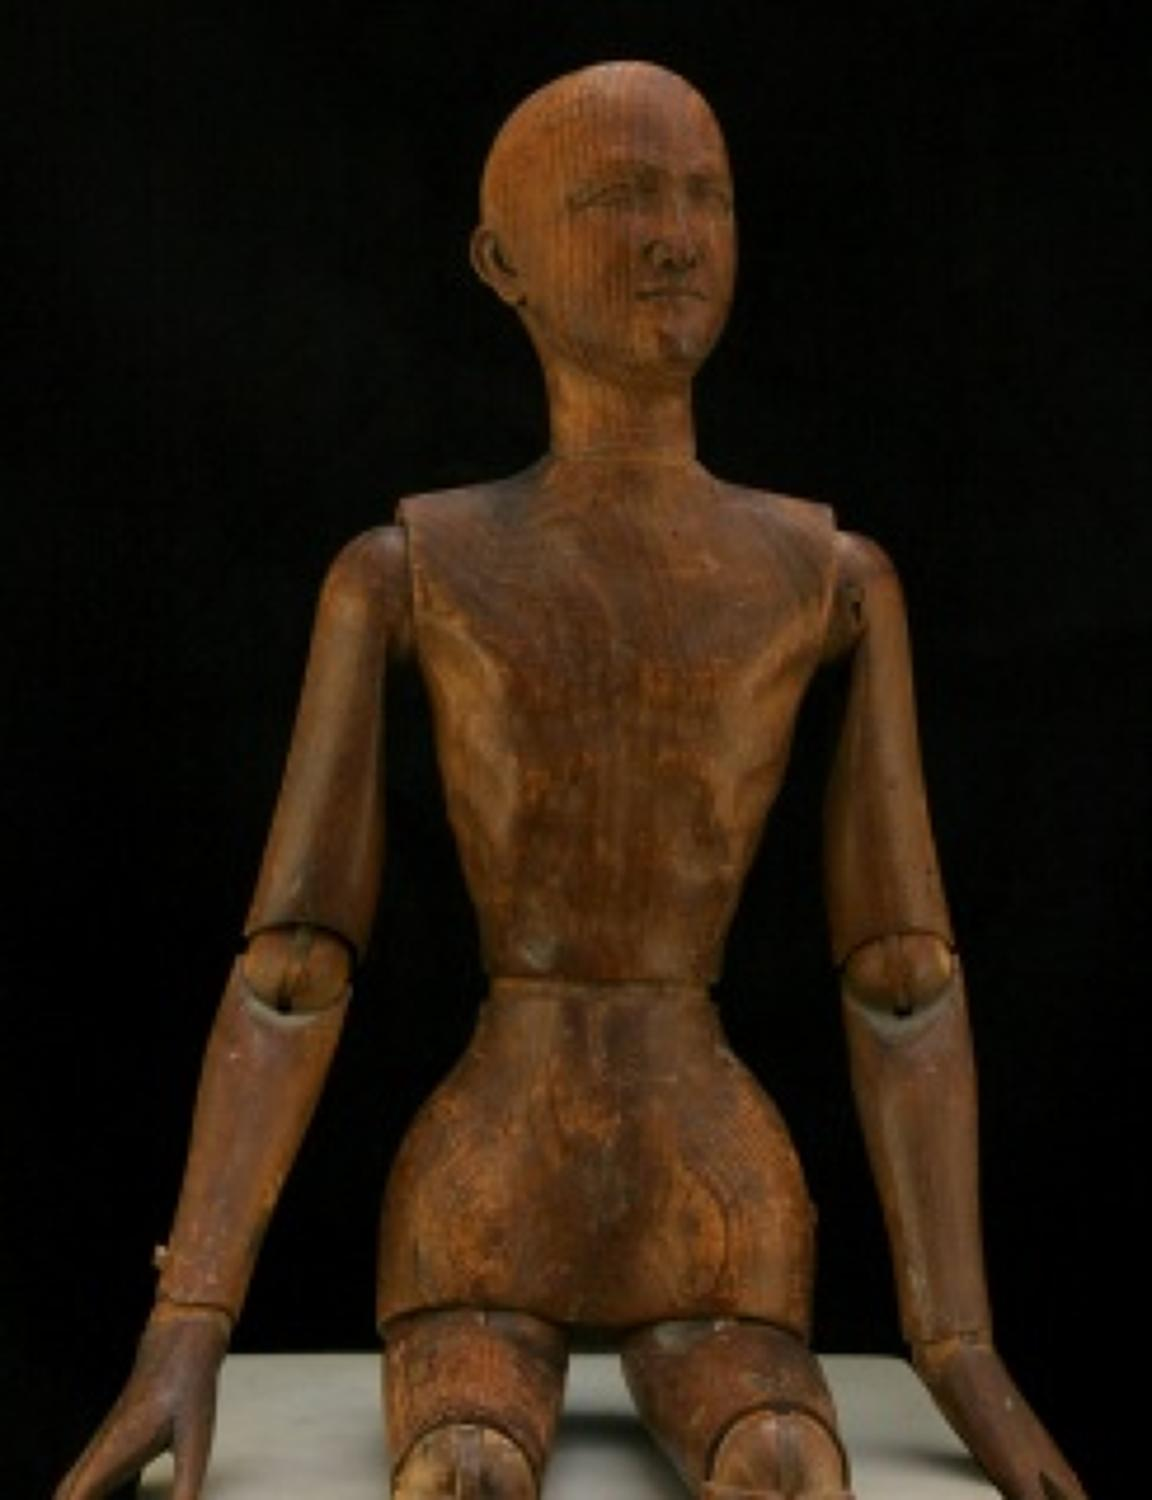 Fine 19th century Lay model, Mannequin, manikin